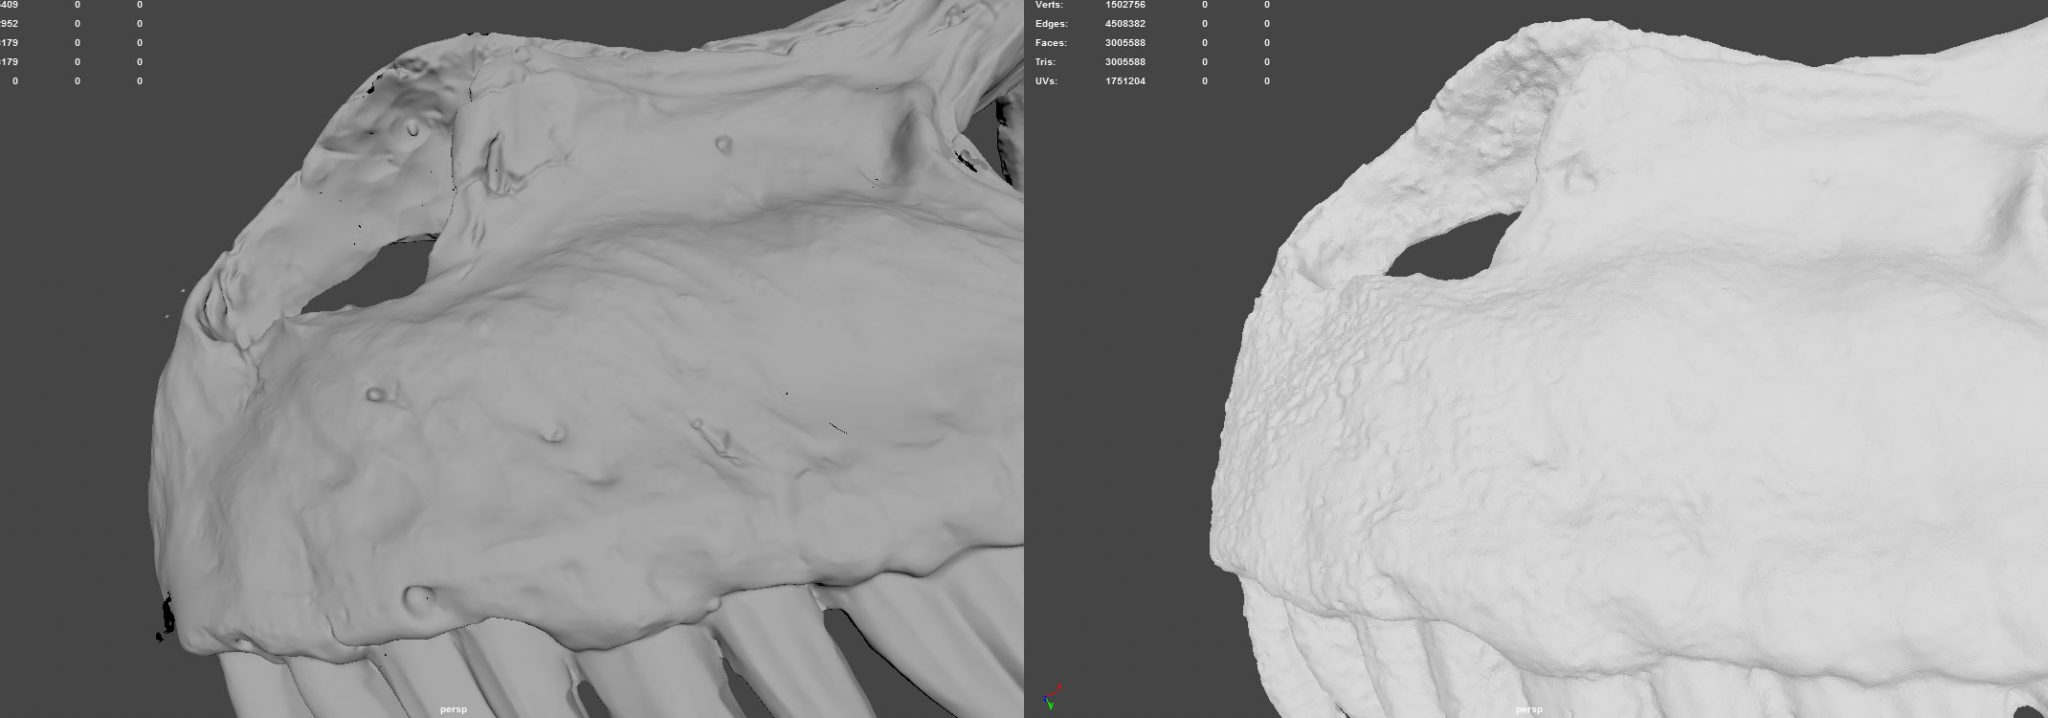 Details on a saser scanned mesh compared with photogrammetry mesh